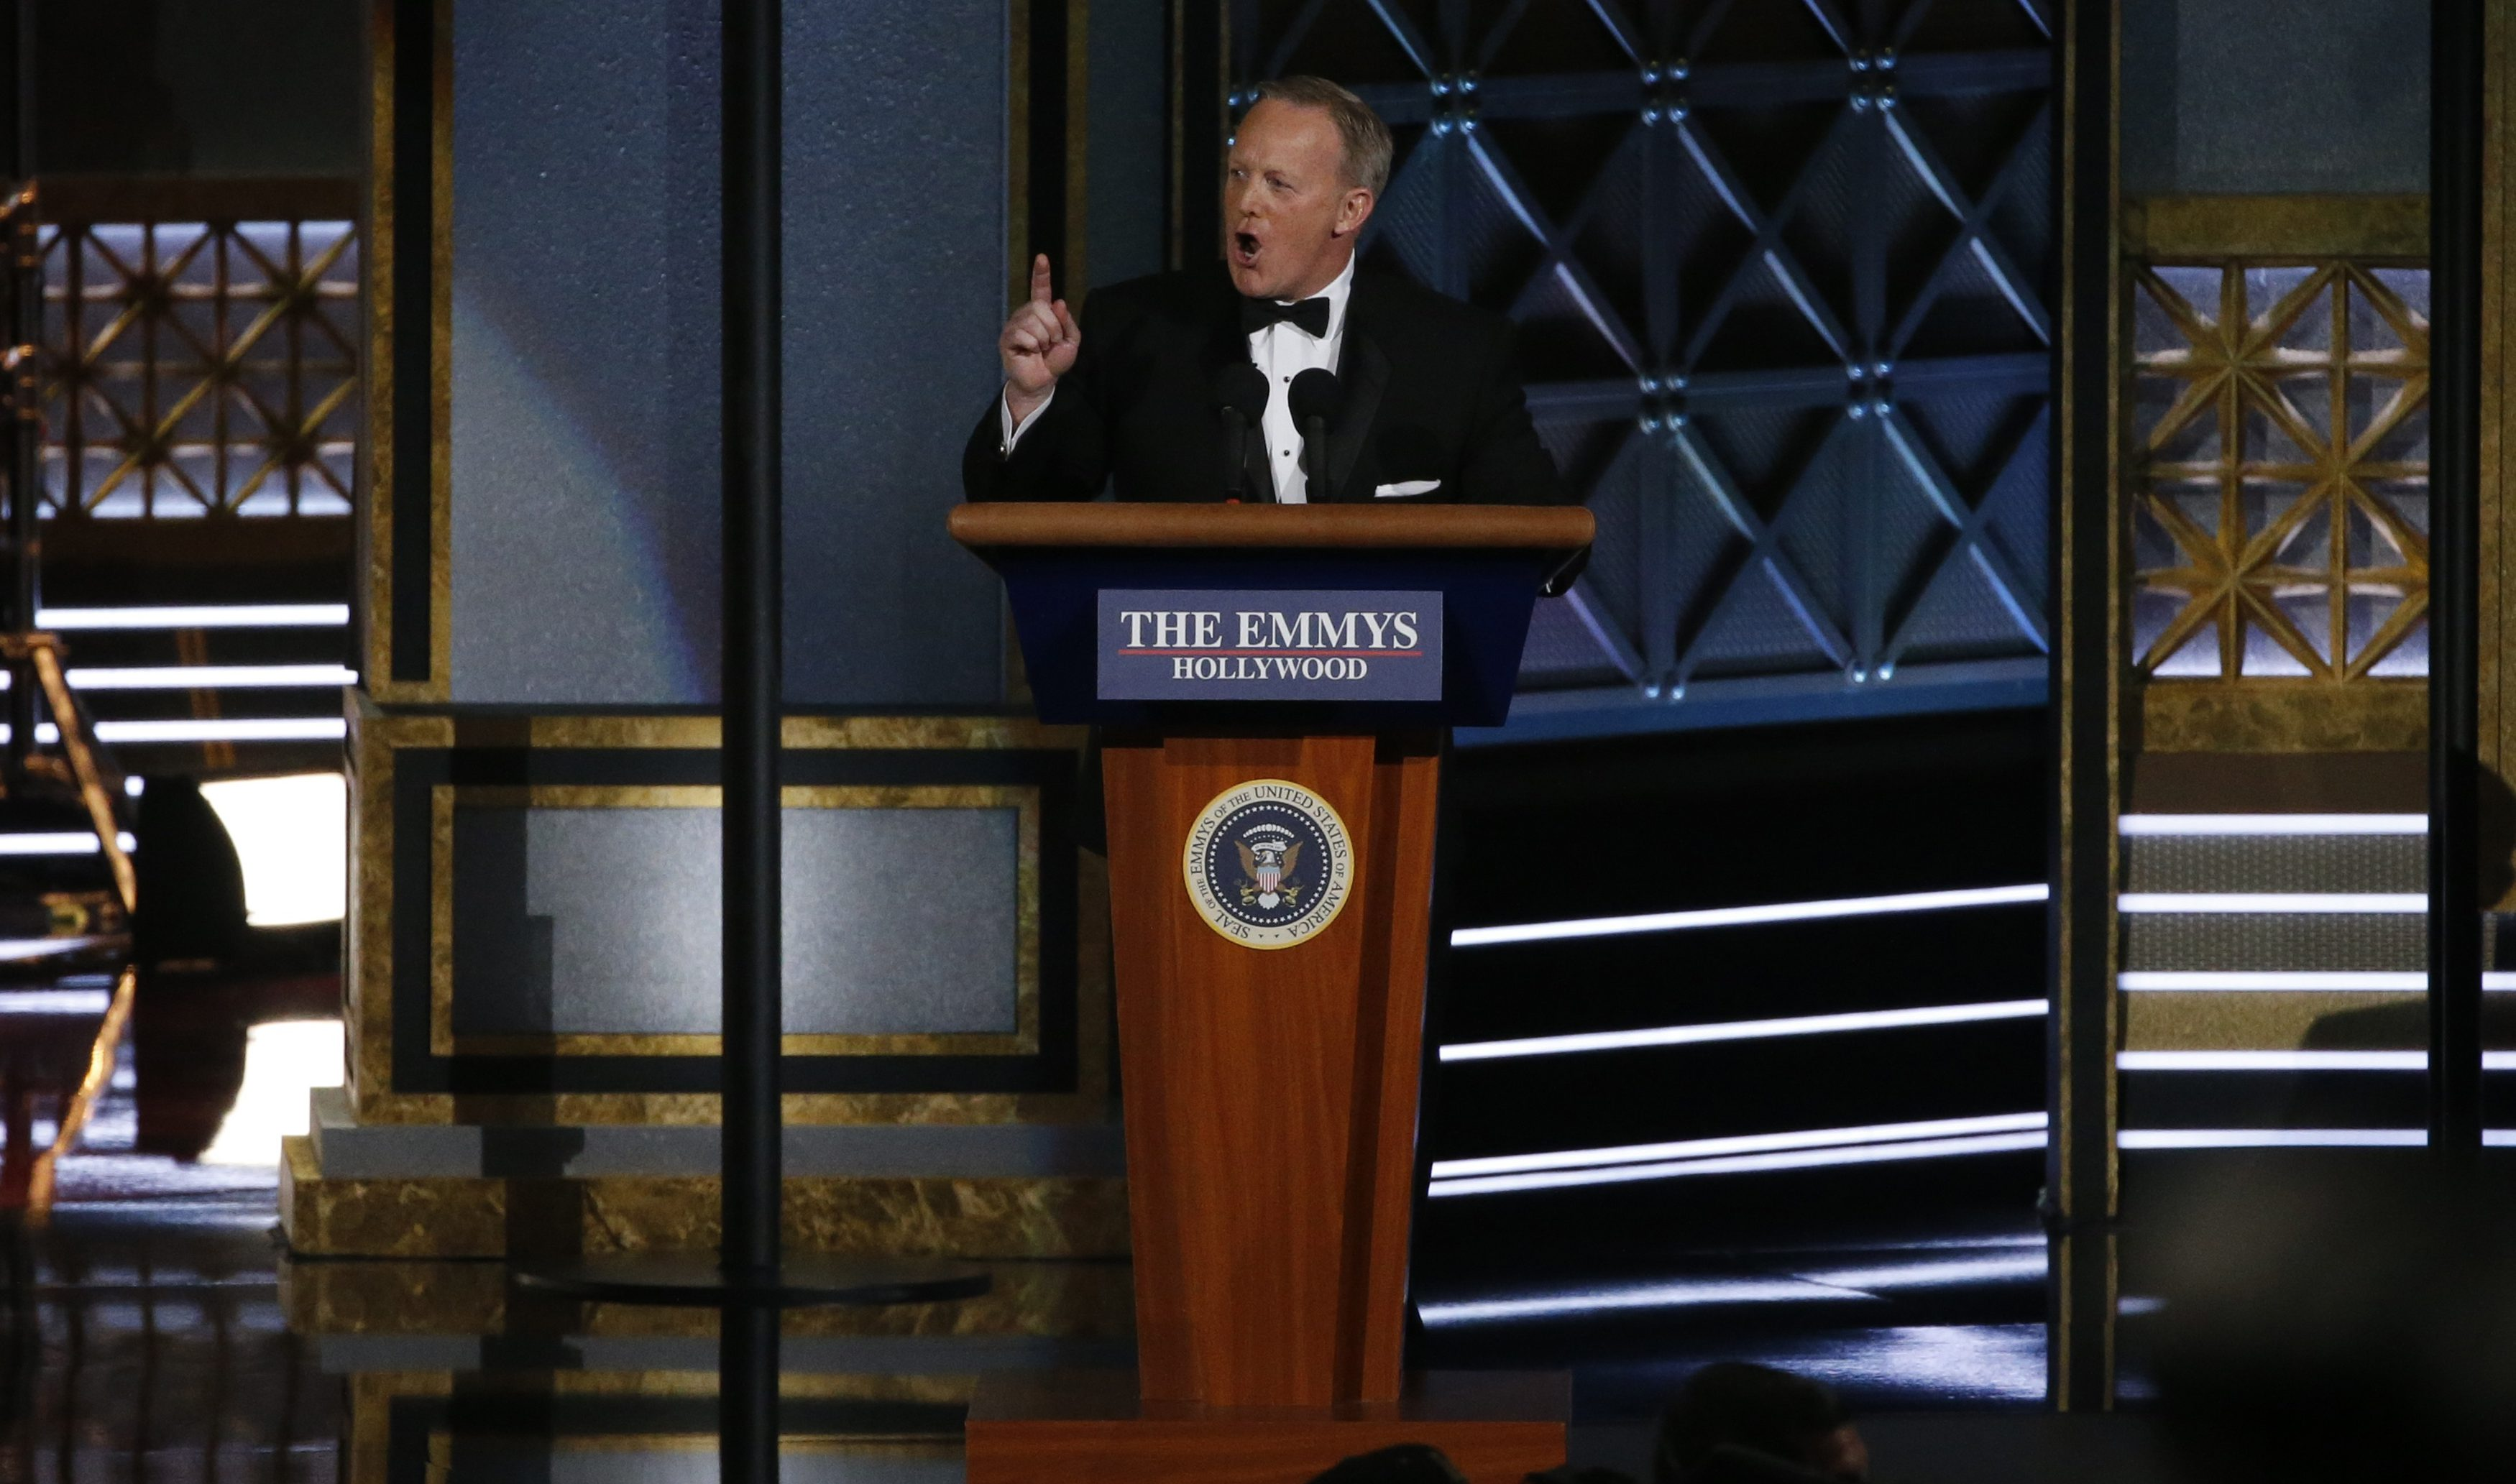 69th Primetime Emmy Awards – Show – Los Angeles, California, U.S., 17/09/2017 - Former White House Press Secretary Sean Spicer speaks. REUTERS/Mario Anzuoni - HP1ED9I01QMXW